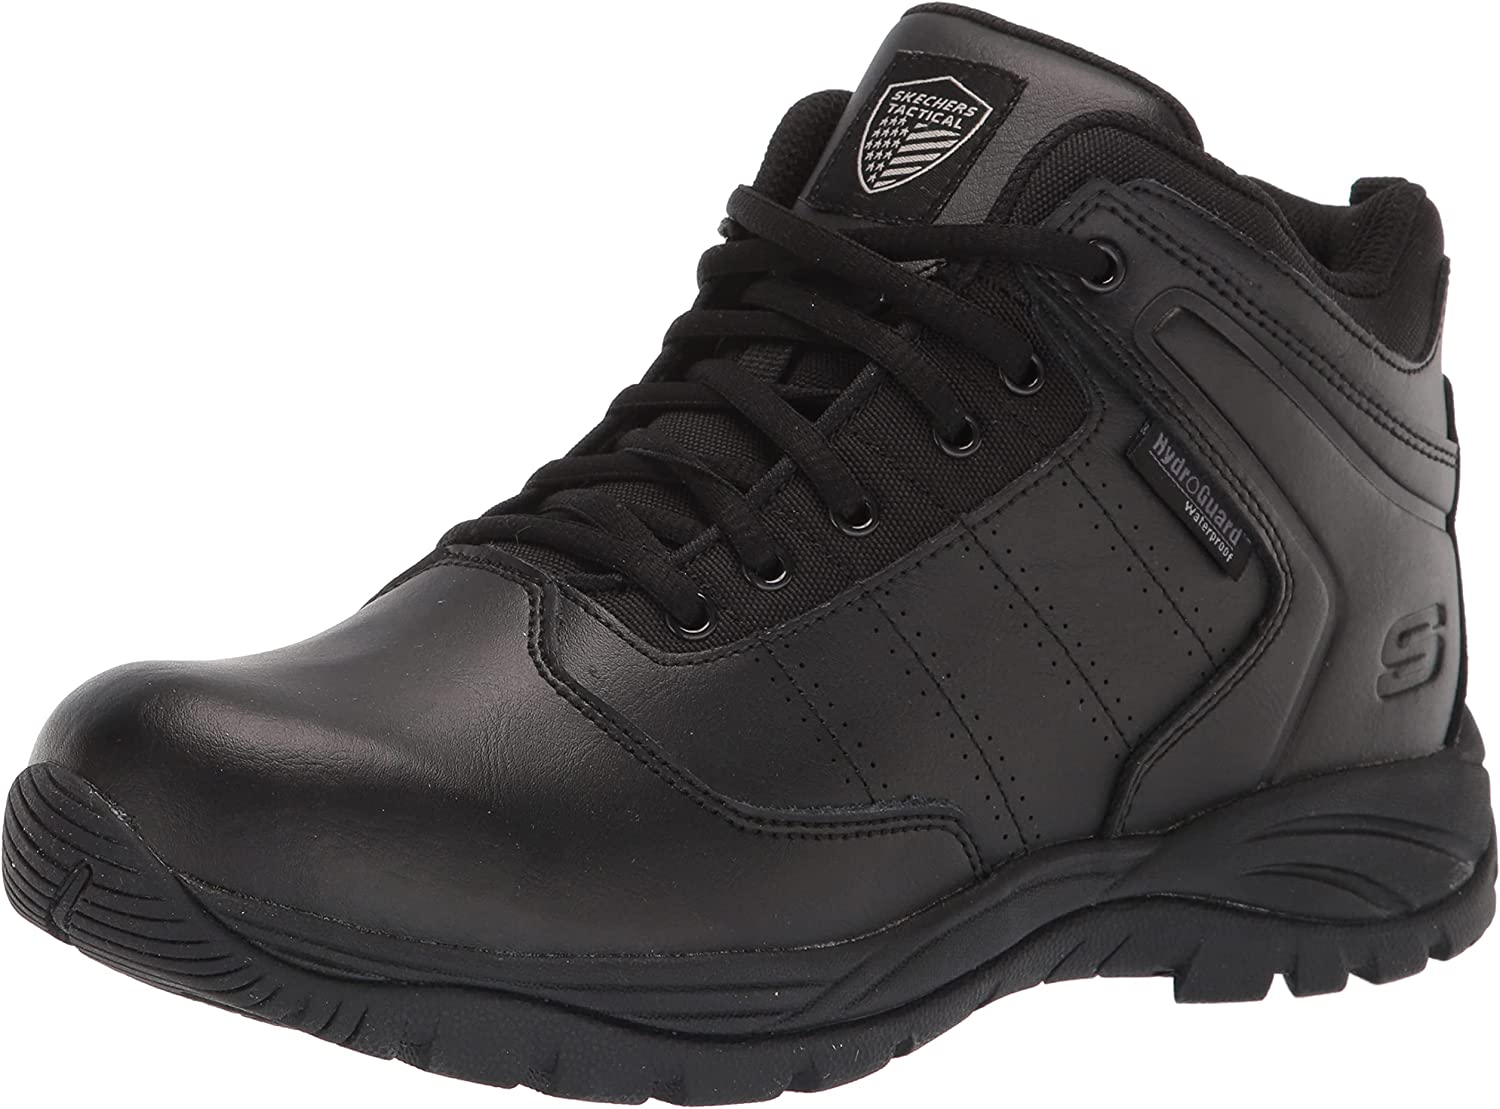 Skechers Men's Braly Boot Shoe Industrial Cheap super special price Popular products